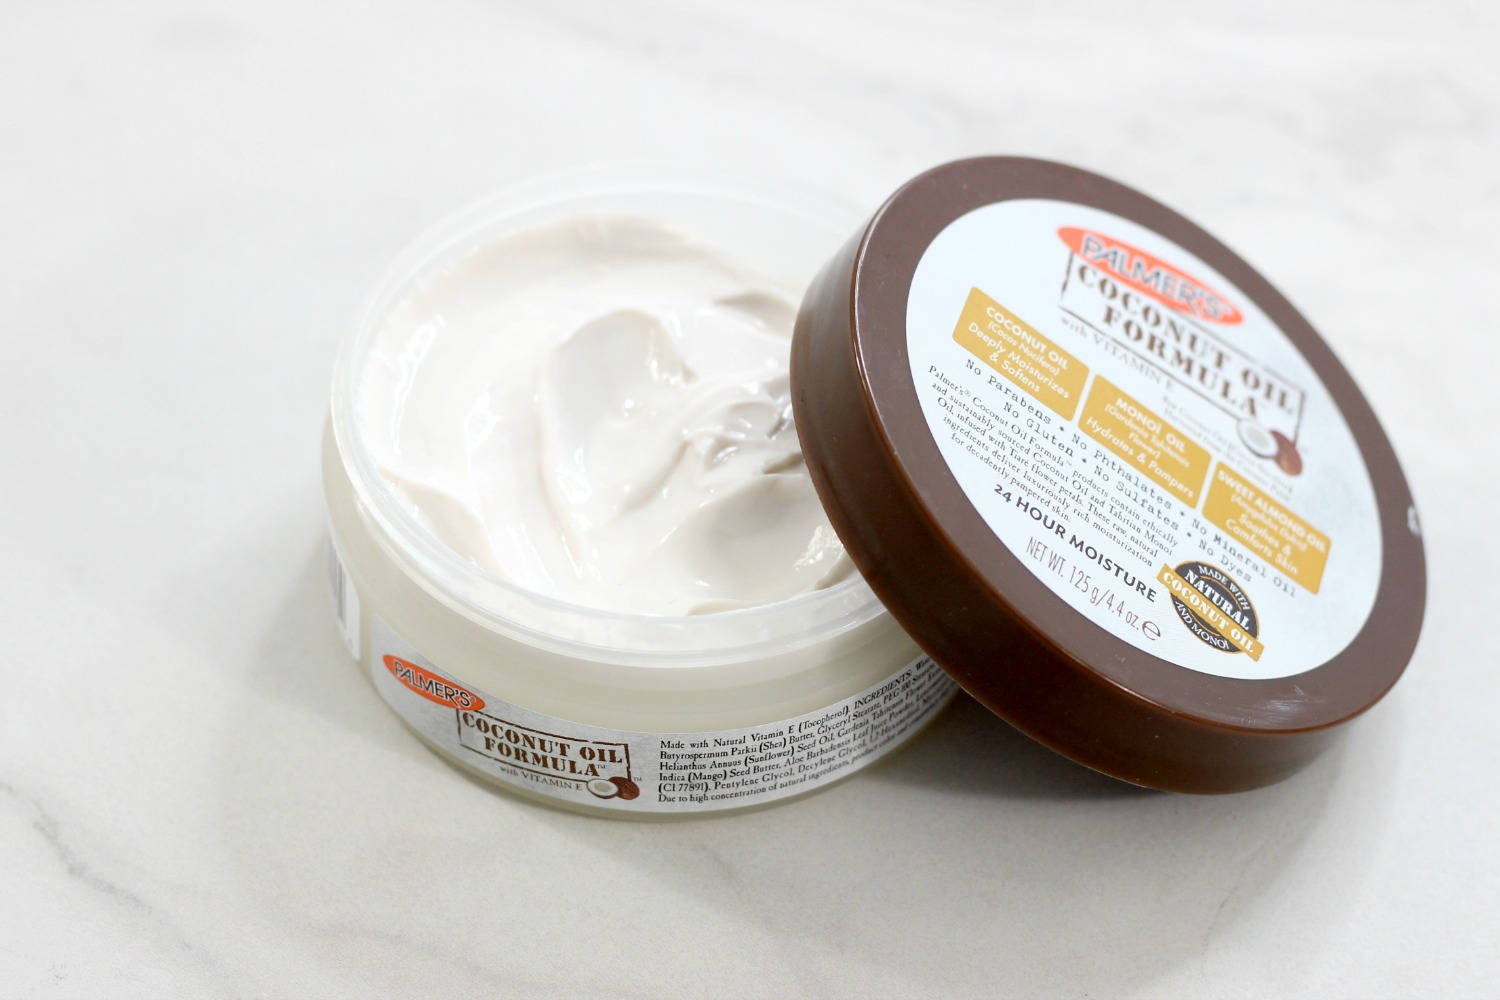 Palmer's Coconut Oil Formula Body Cream Body Butter